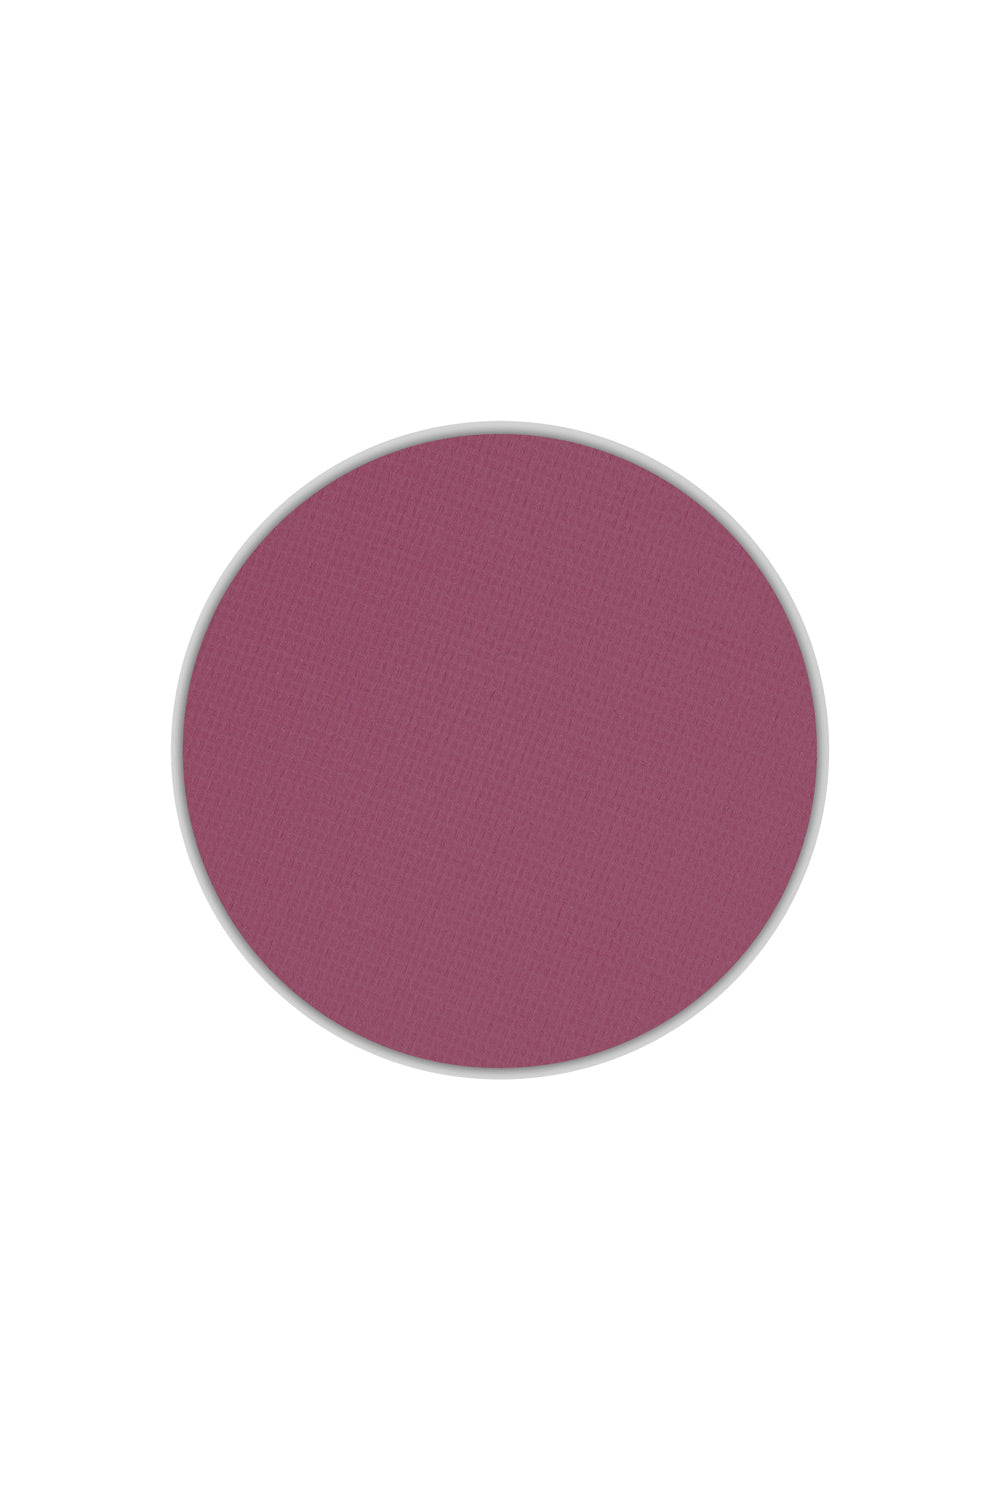 Shiraz Matte - Eyeshadow Pan